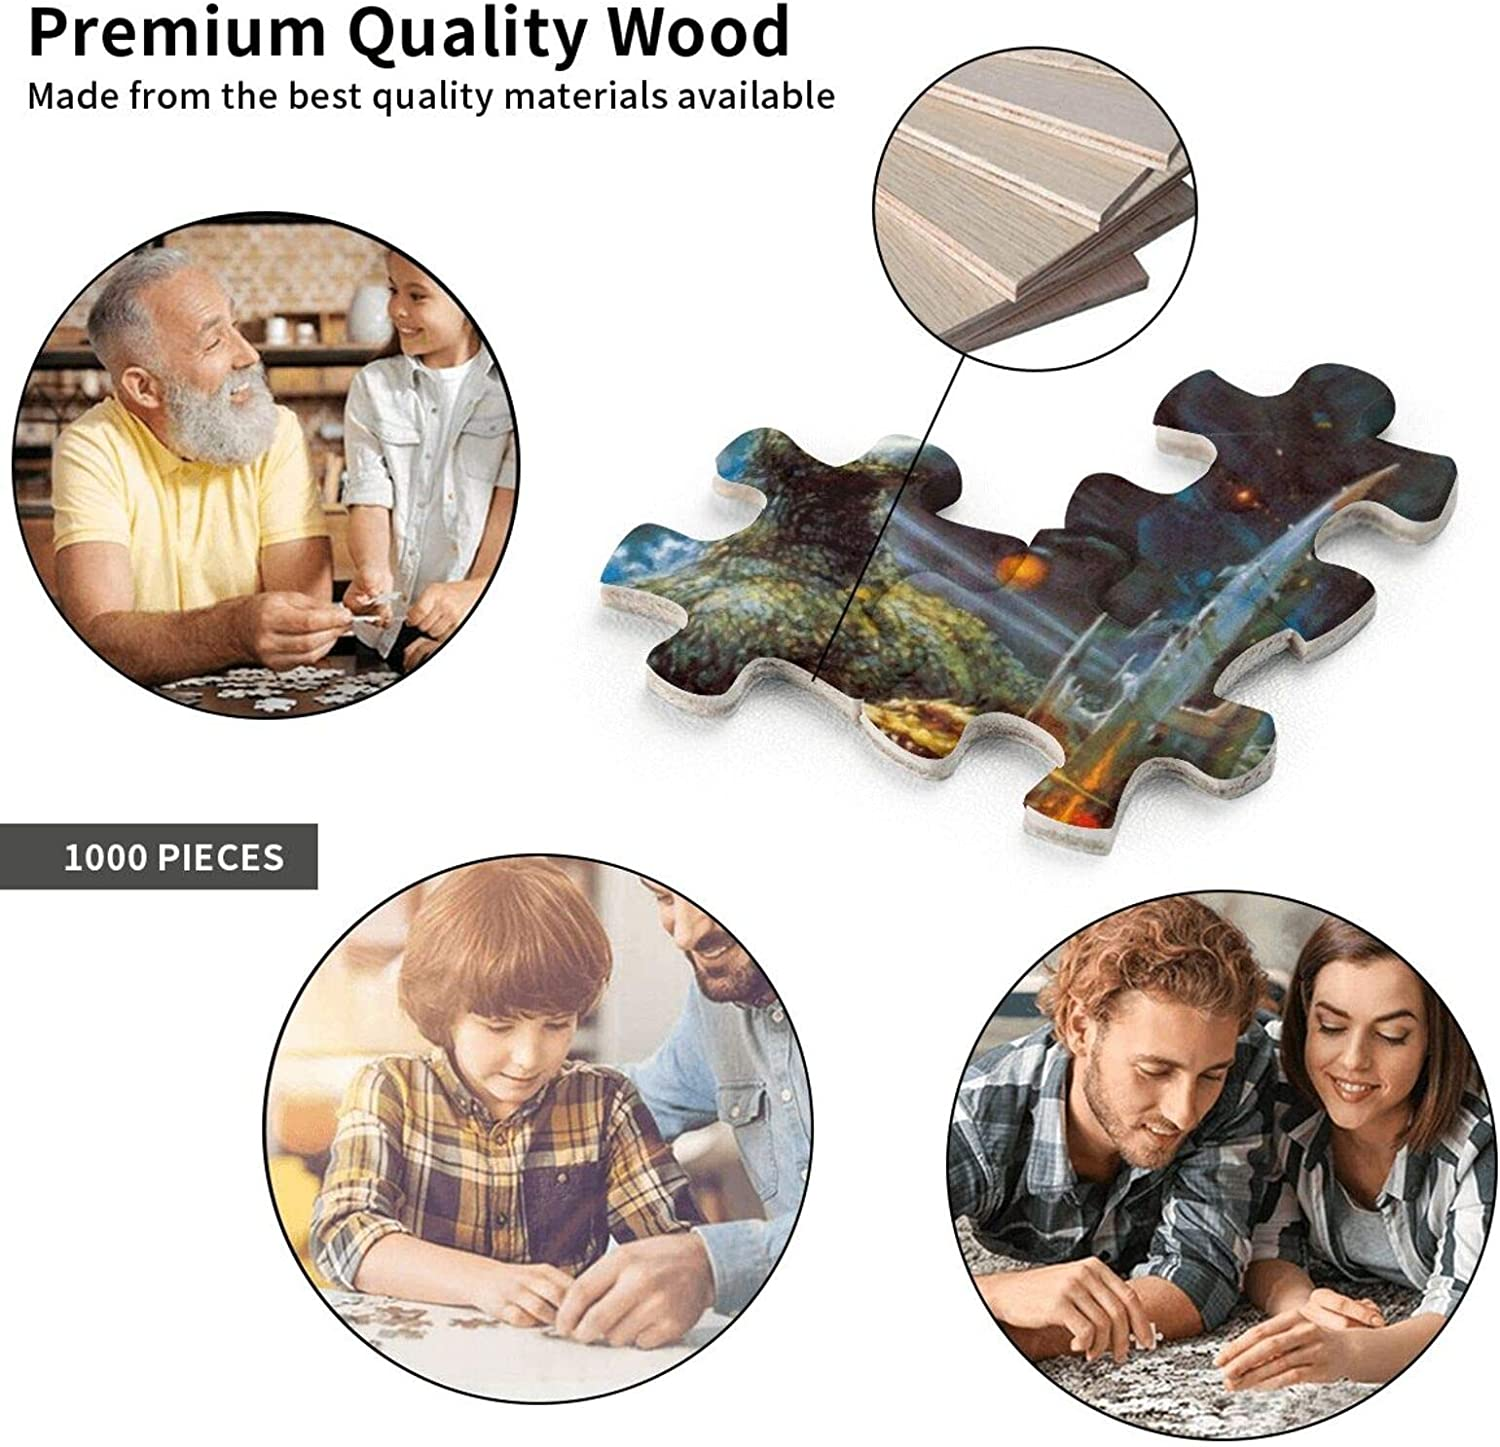 Godzilla 1000 Piece Puzzle Jigsaw for Adults and Children-Wooden Jigsaw Puzzle Game and Wall Hanging Room Decor